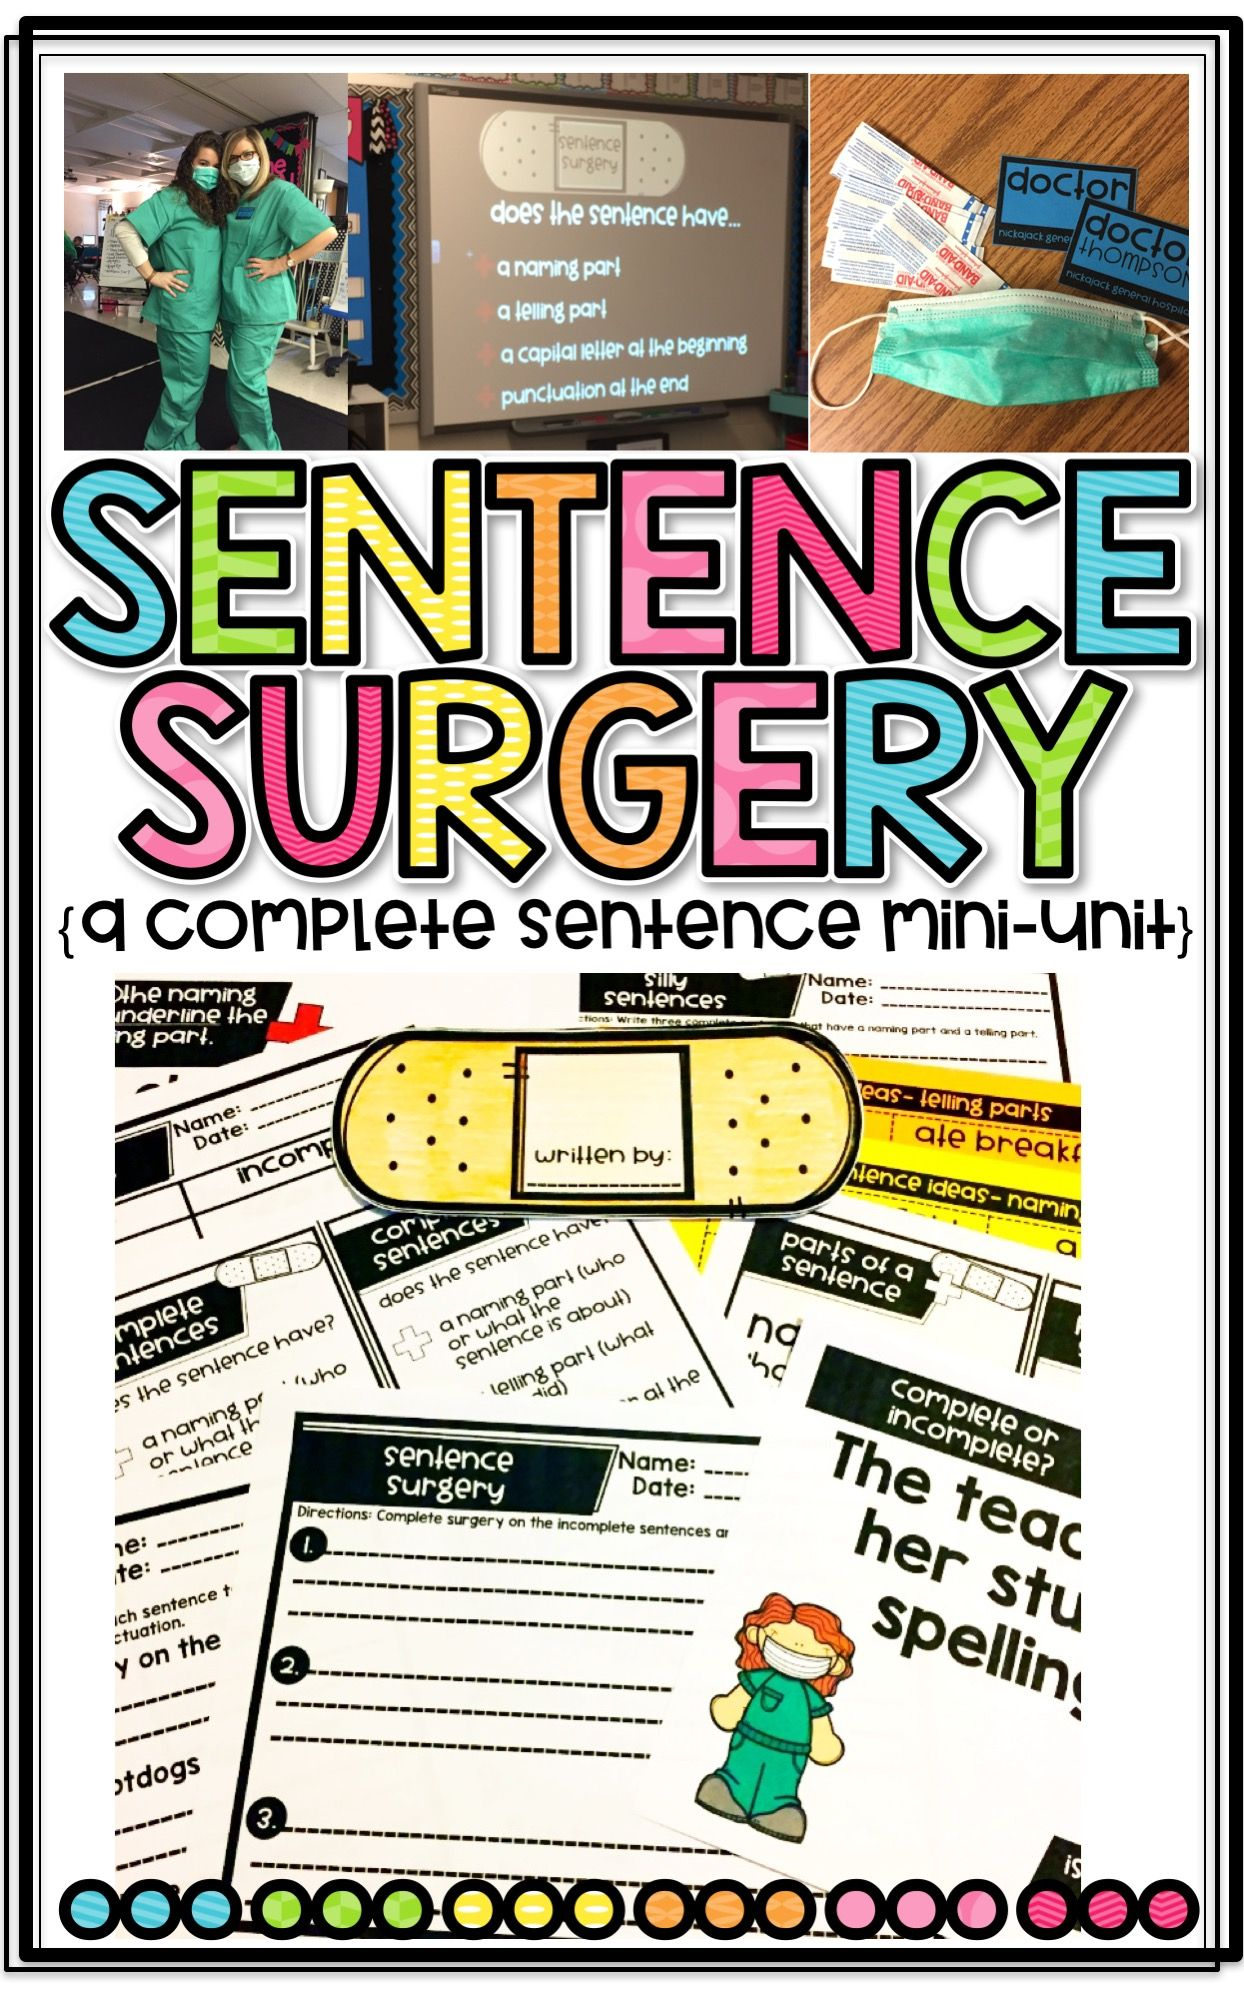 Preposition In Learn In Marathi All Complate: Sentence Surgery: A Complete Sentence Writing Mini-Unit